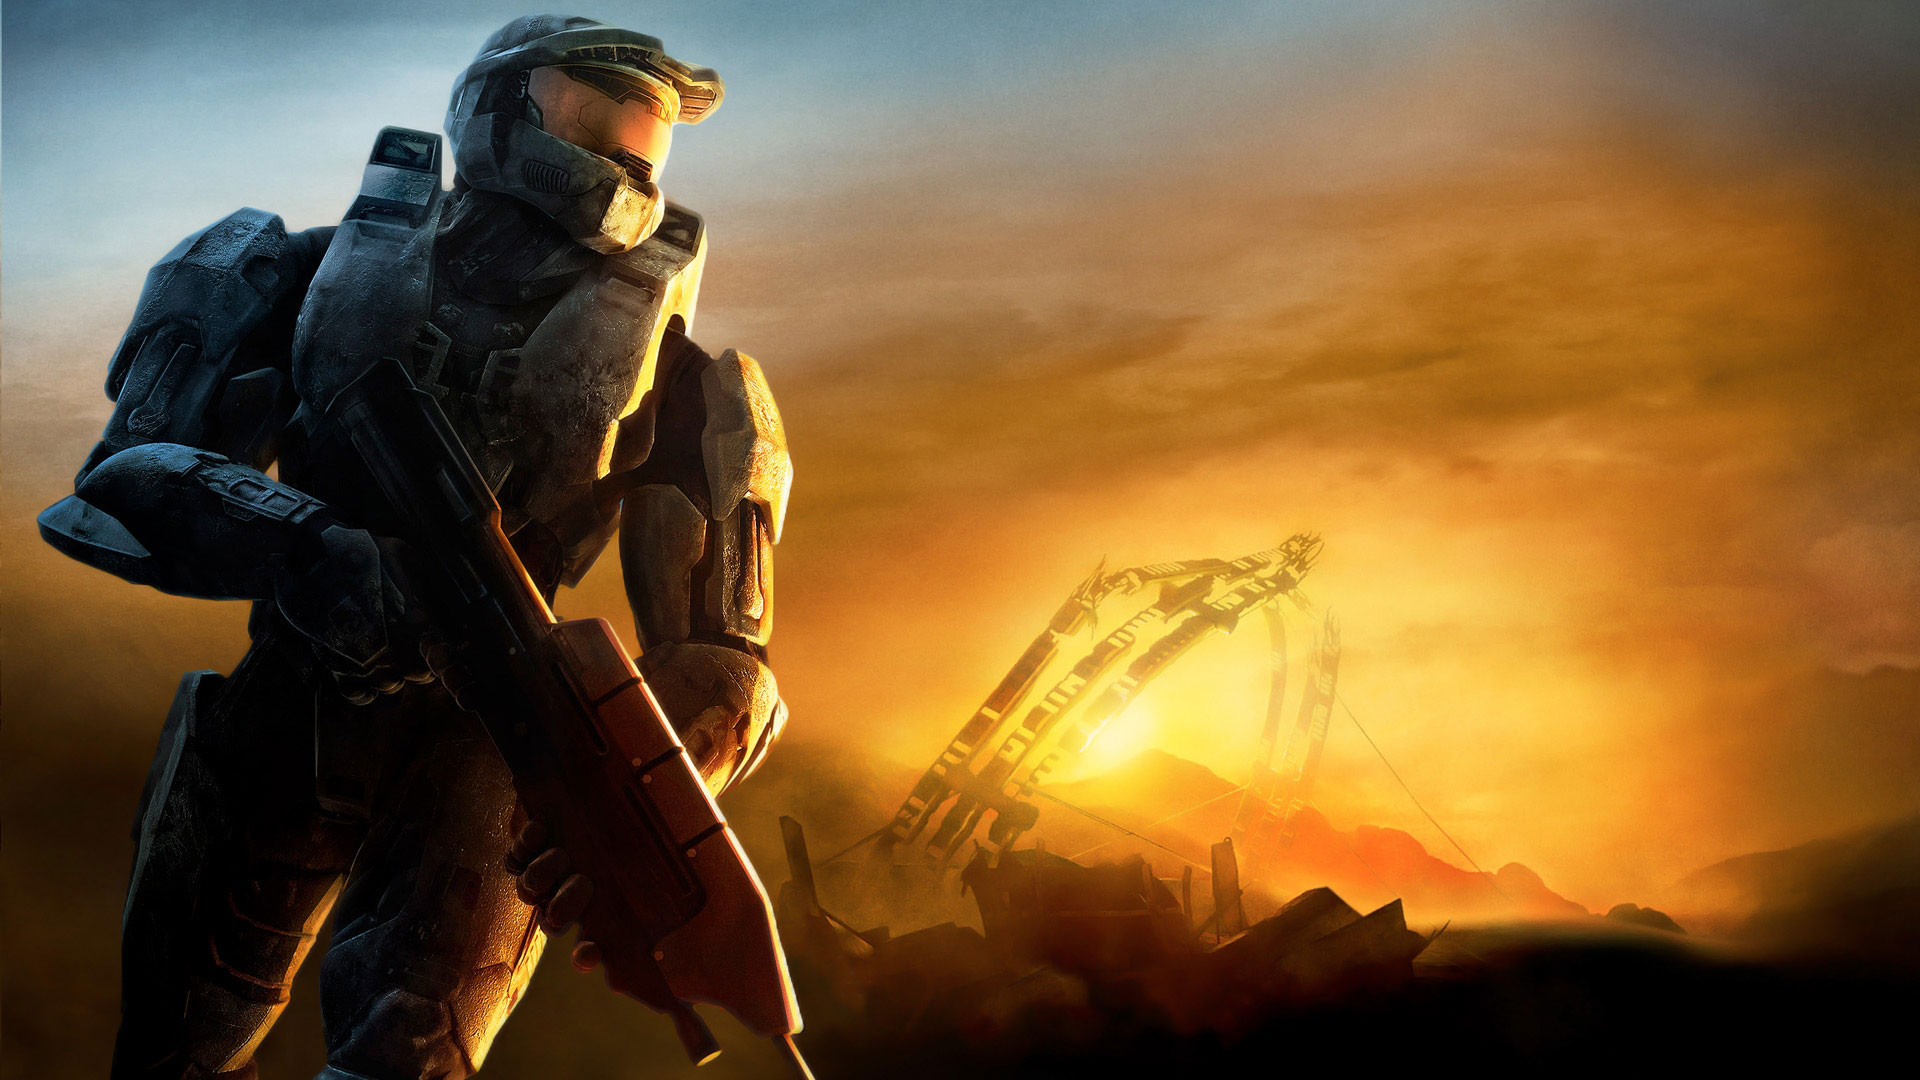 Halo Wallpaper Image Backgrounds 1080p